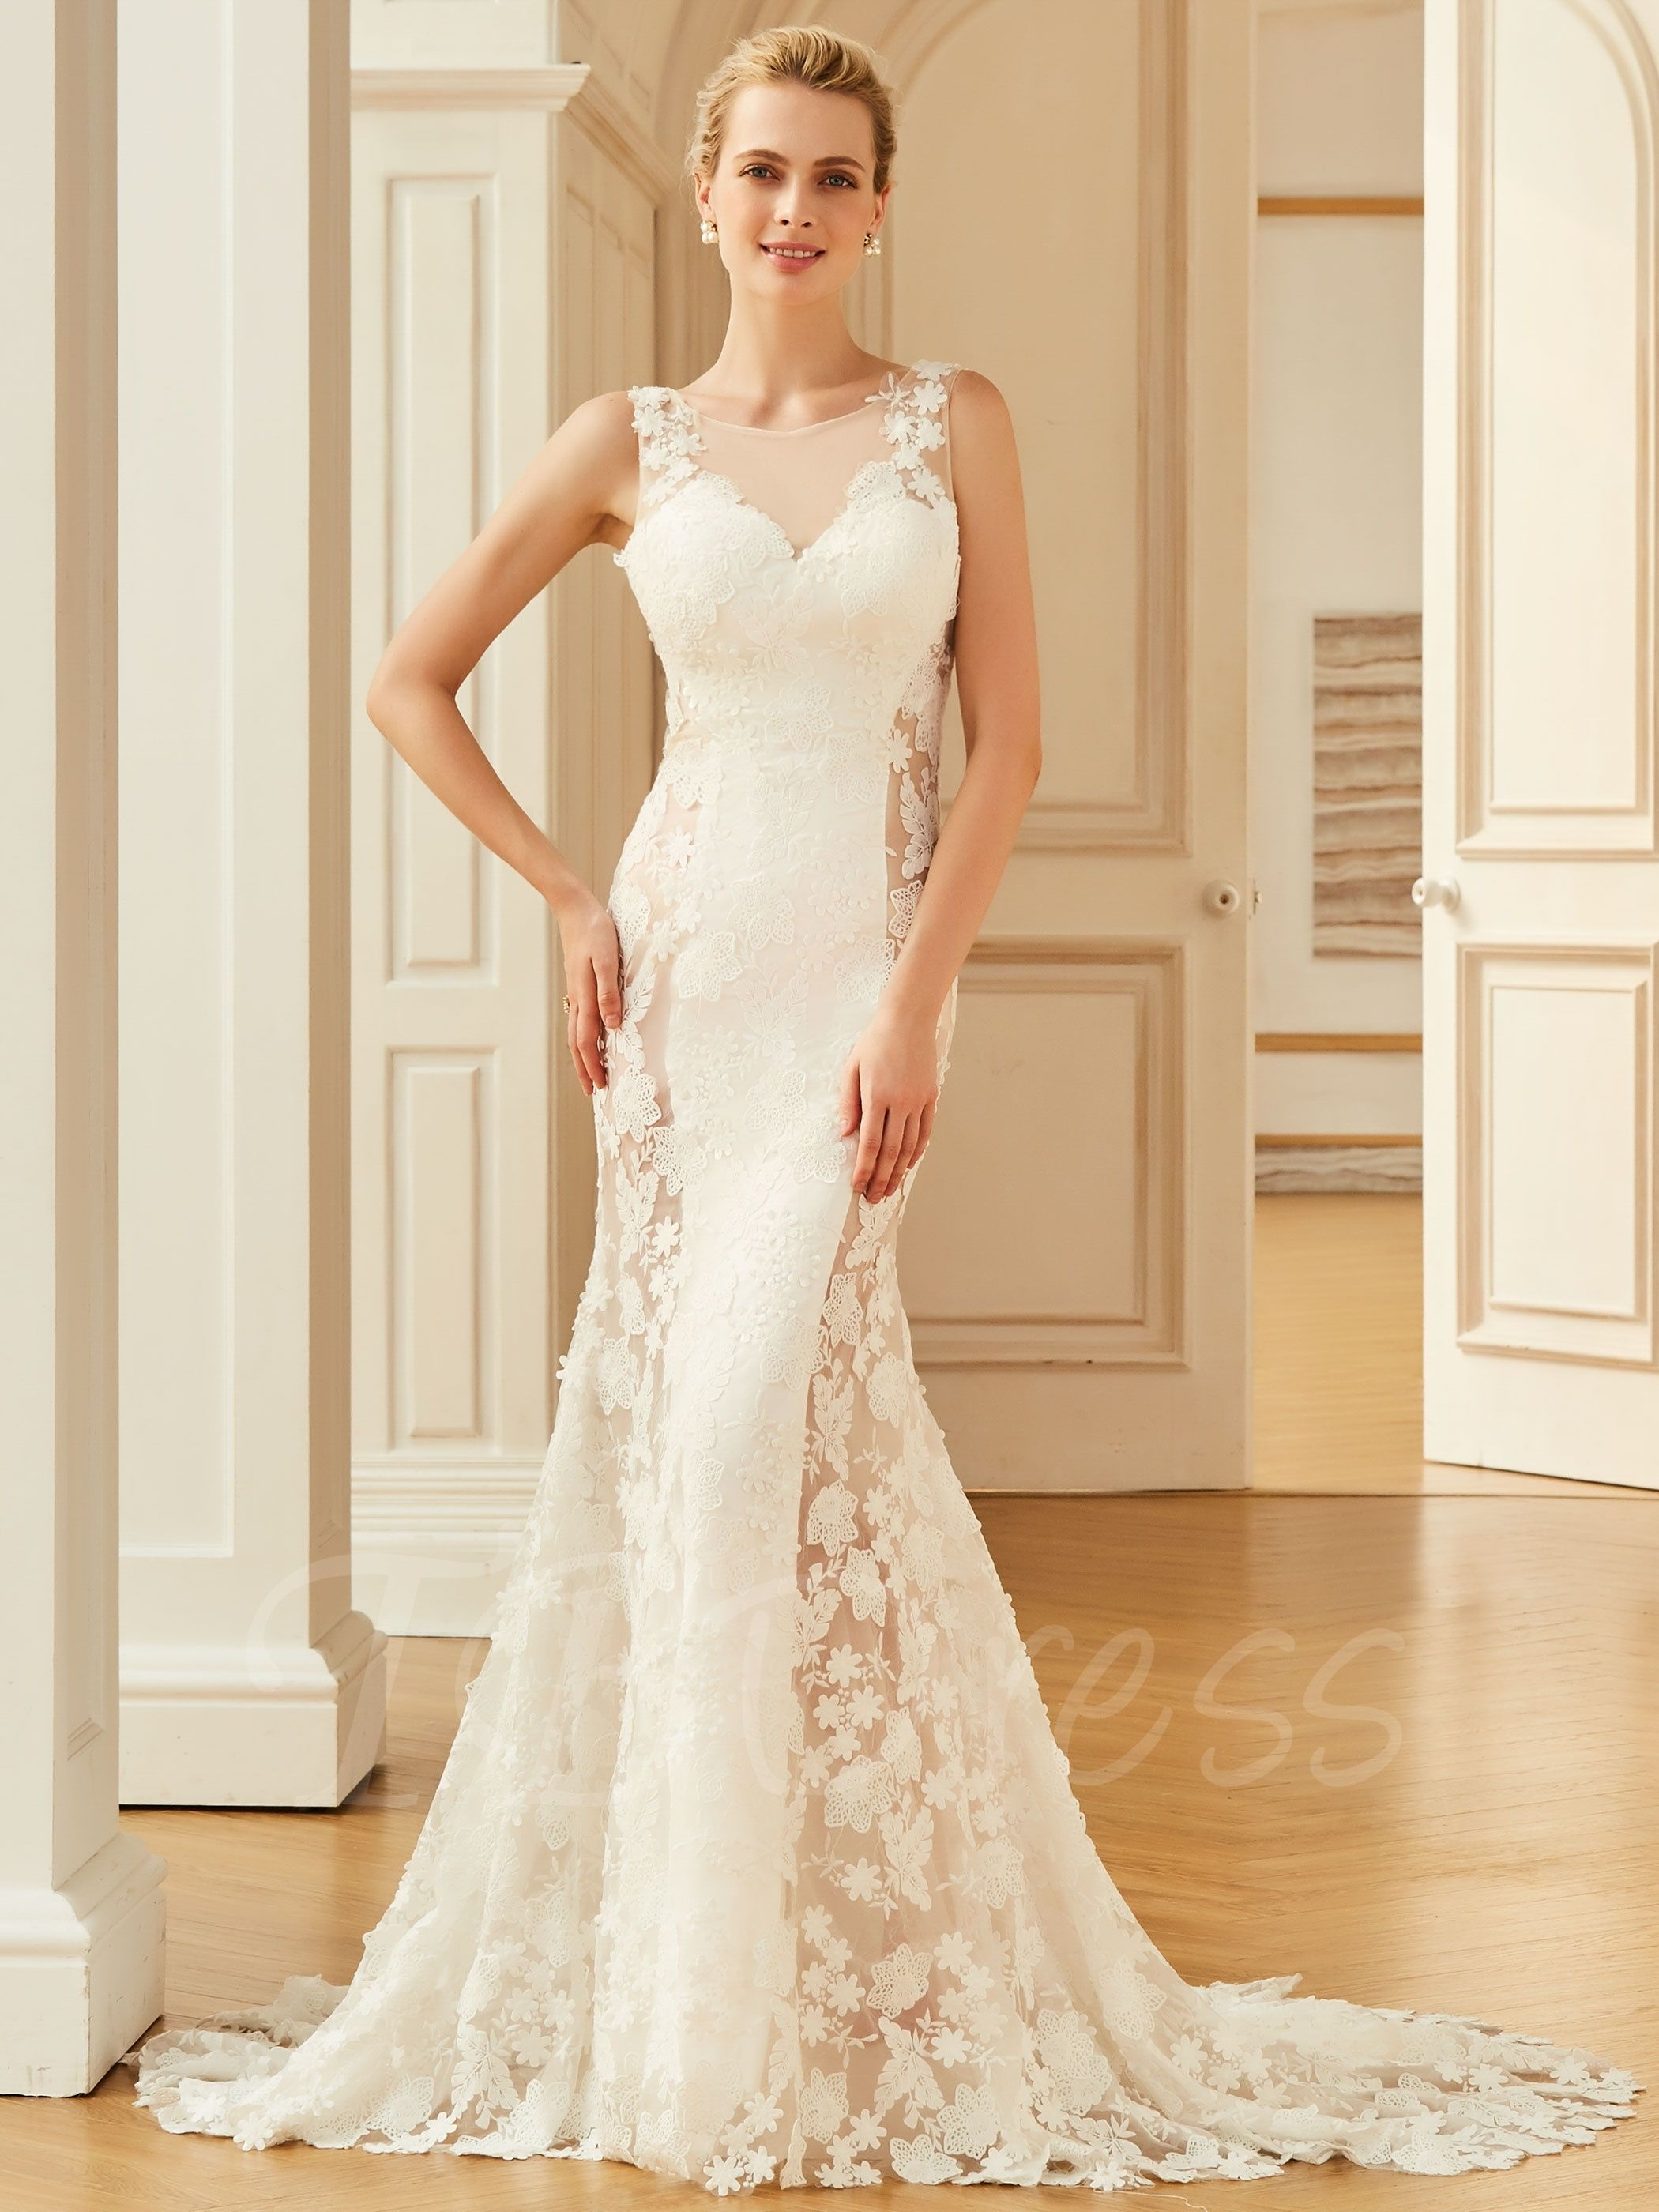 Lace wedding dress with train  Backless Lace Court Train Mermaid Wedding Dress  Mermaid wedding